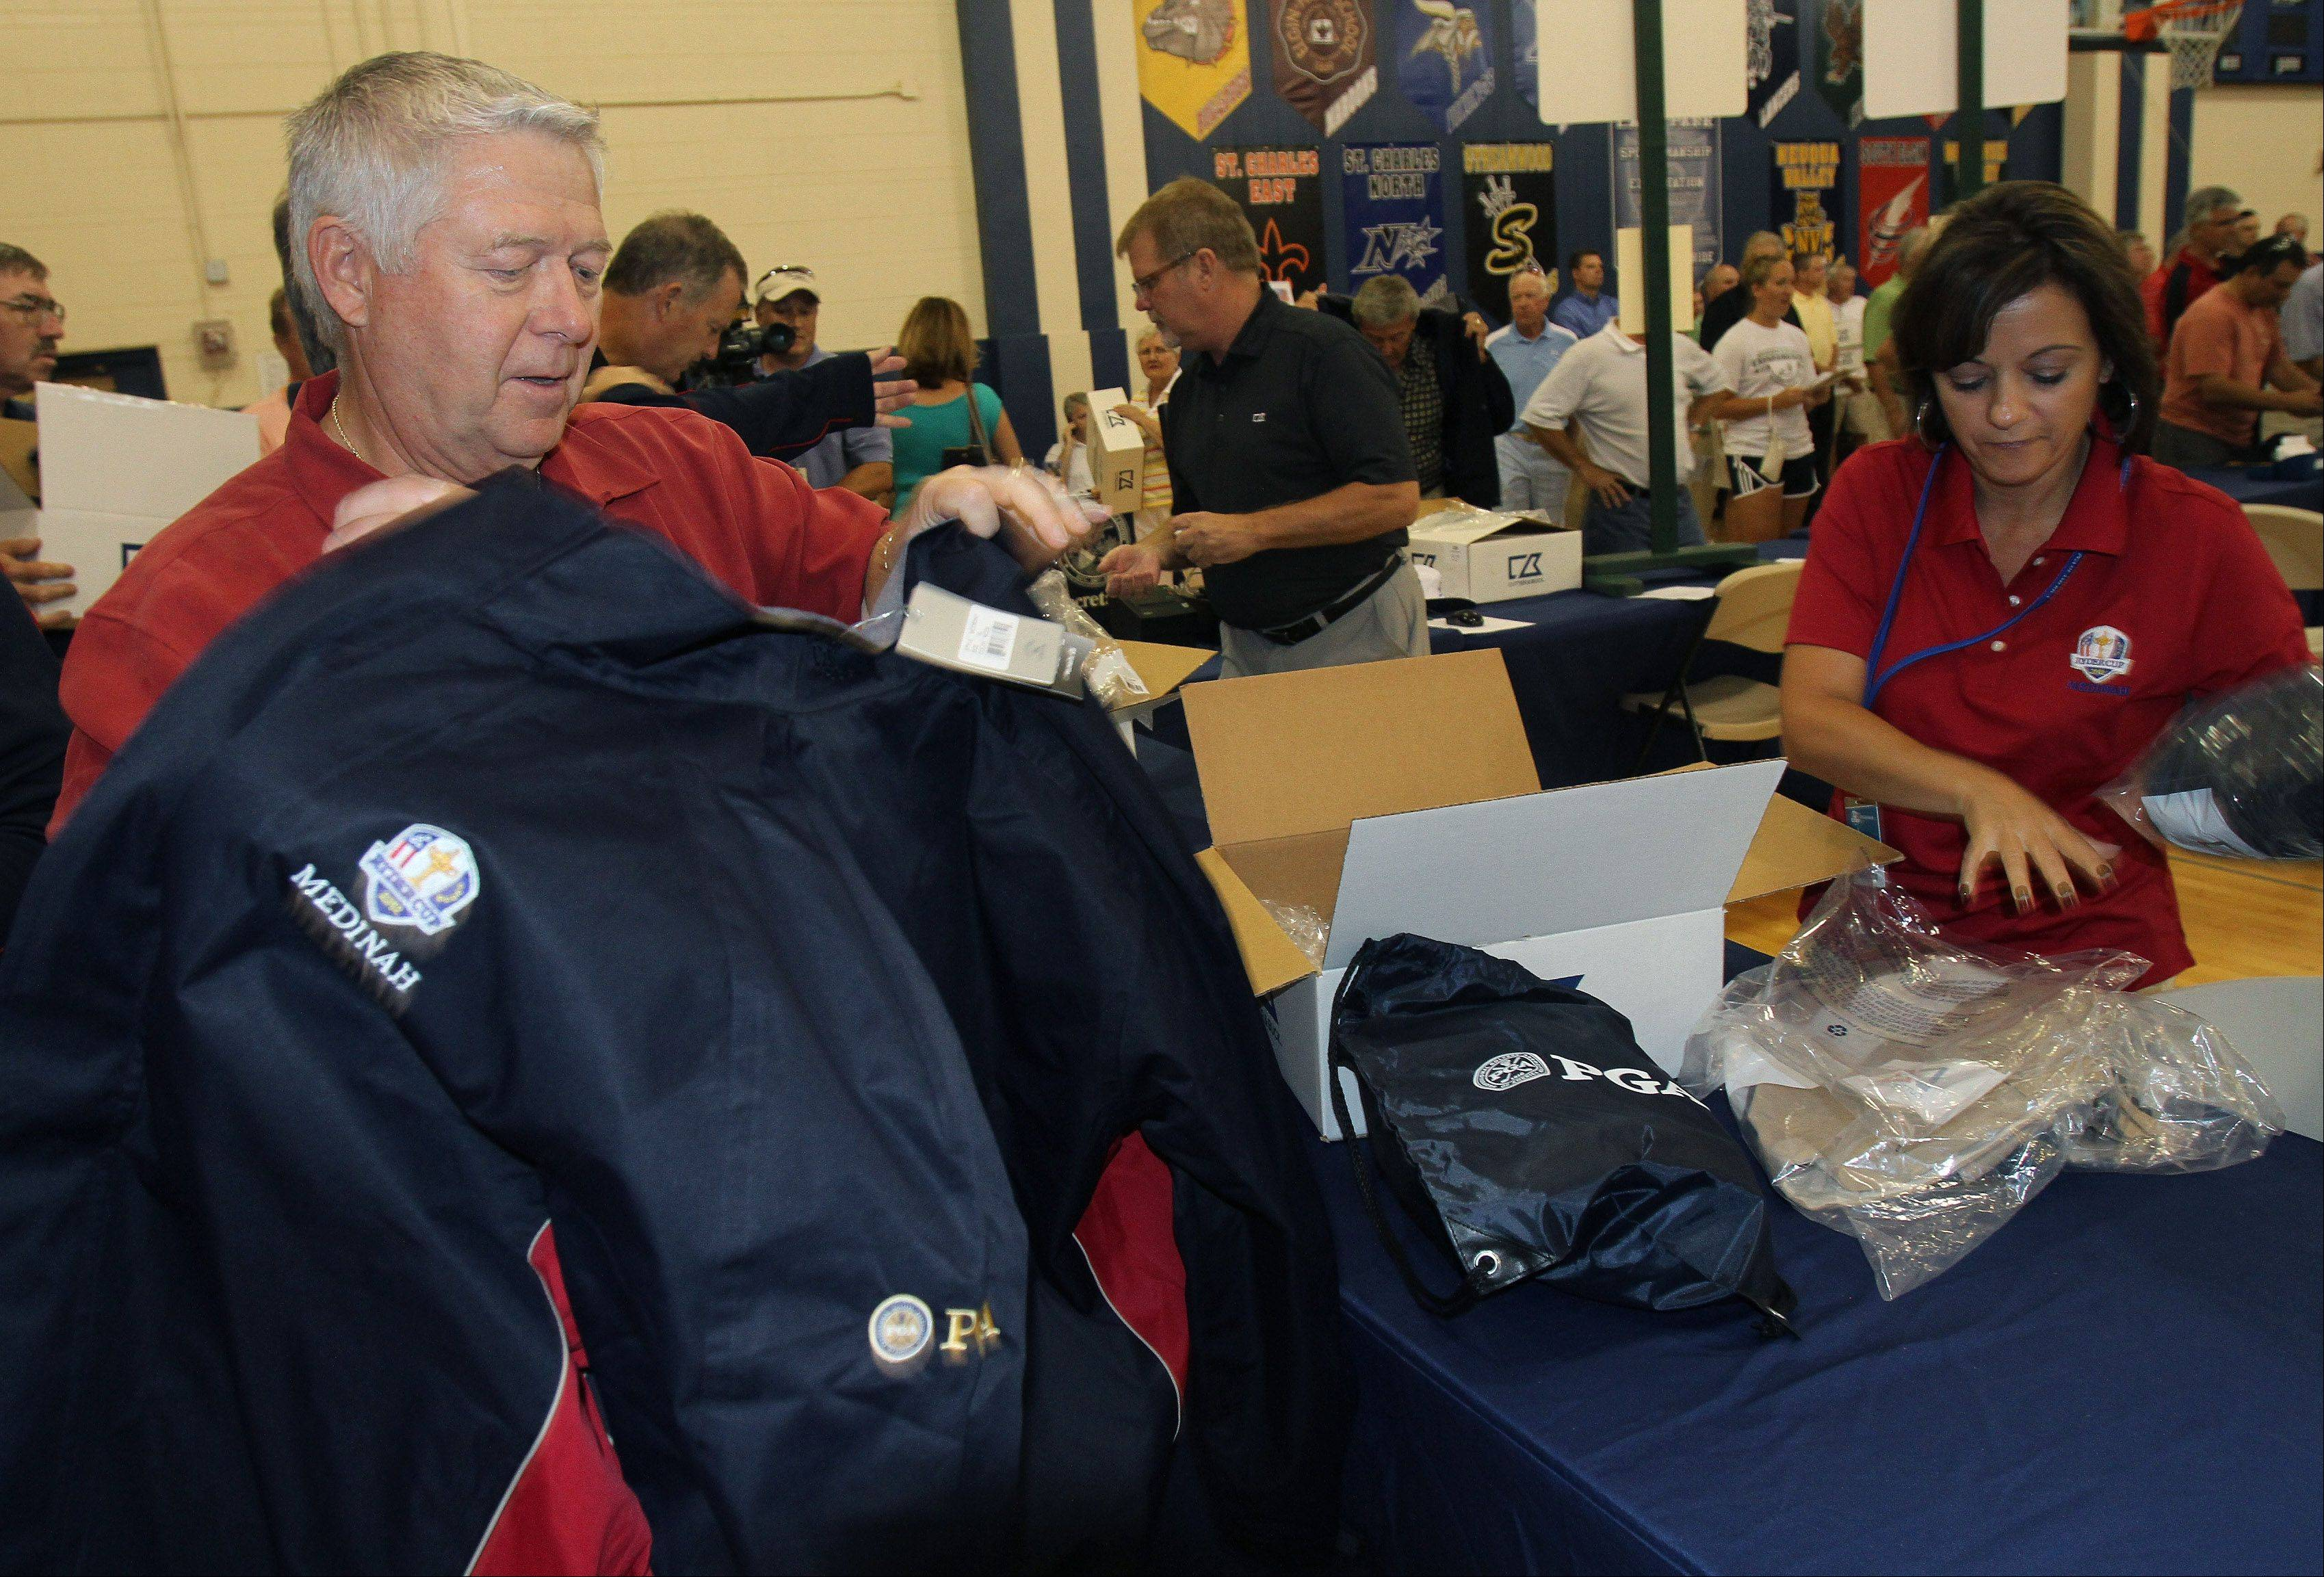 John Gramlich of Glen Ellyn tries on a Ryder Cup volunteer jacket as Sharon Salamone helps him.